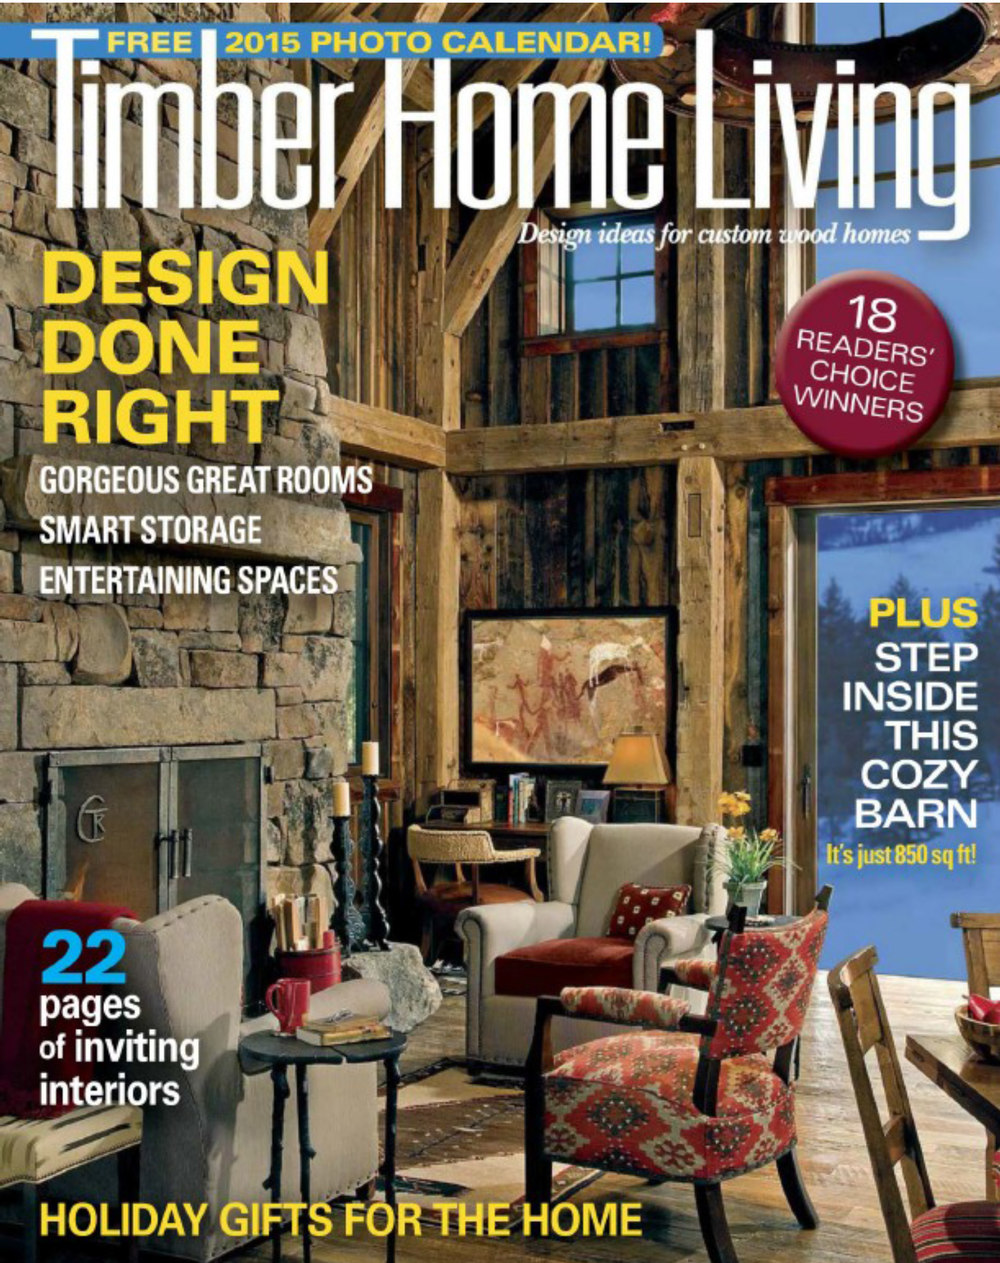 4 Timber Home Living December 2014.jpg